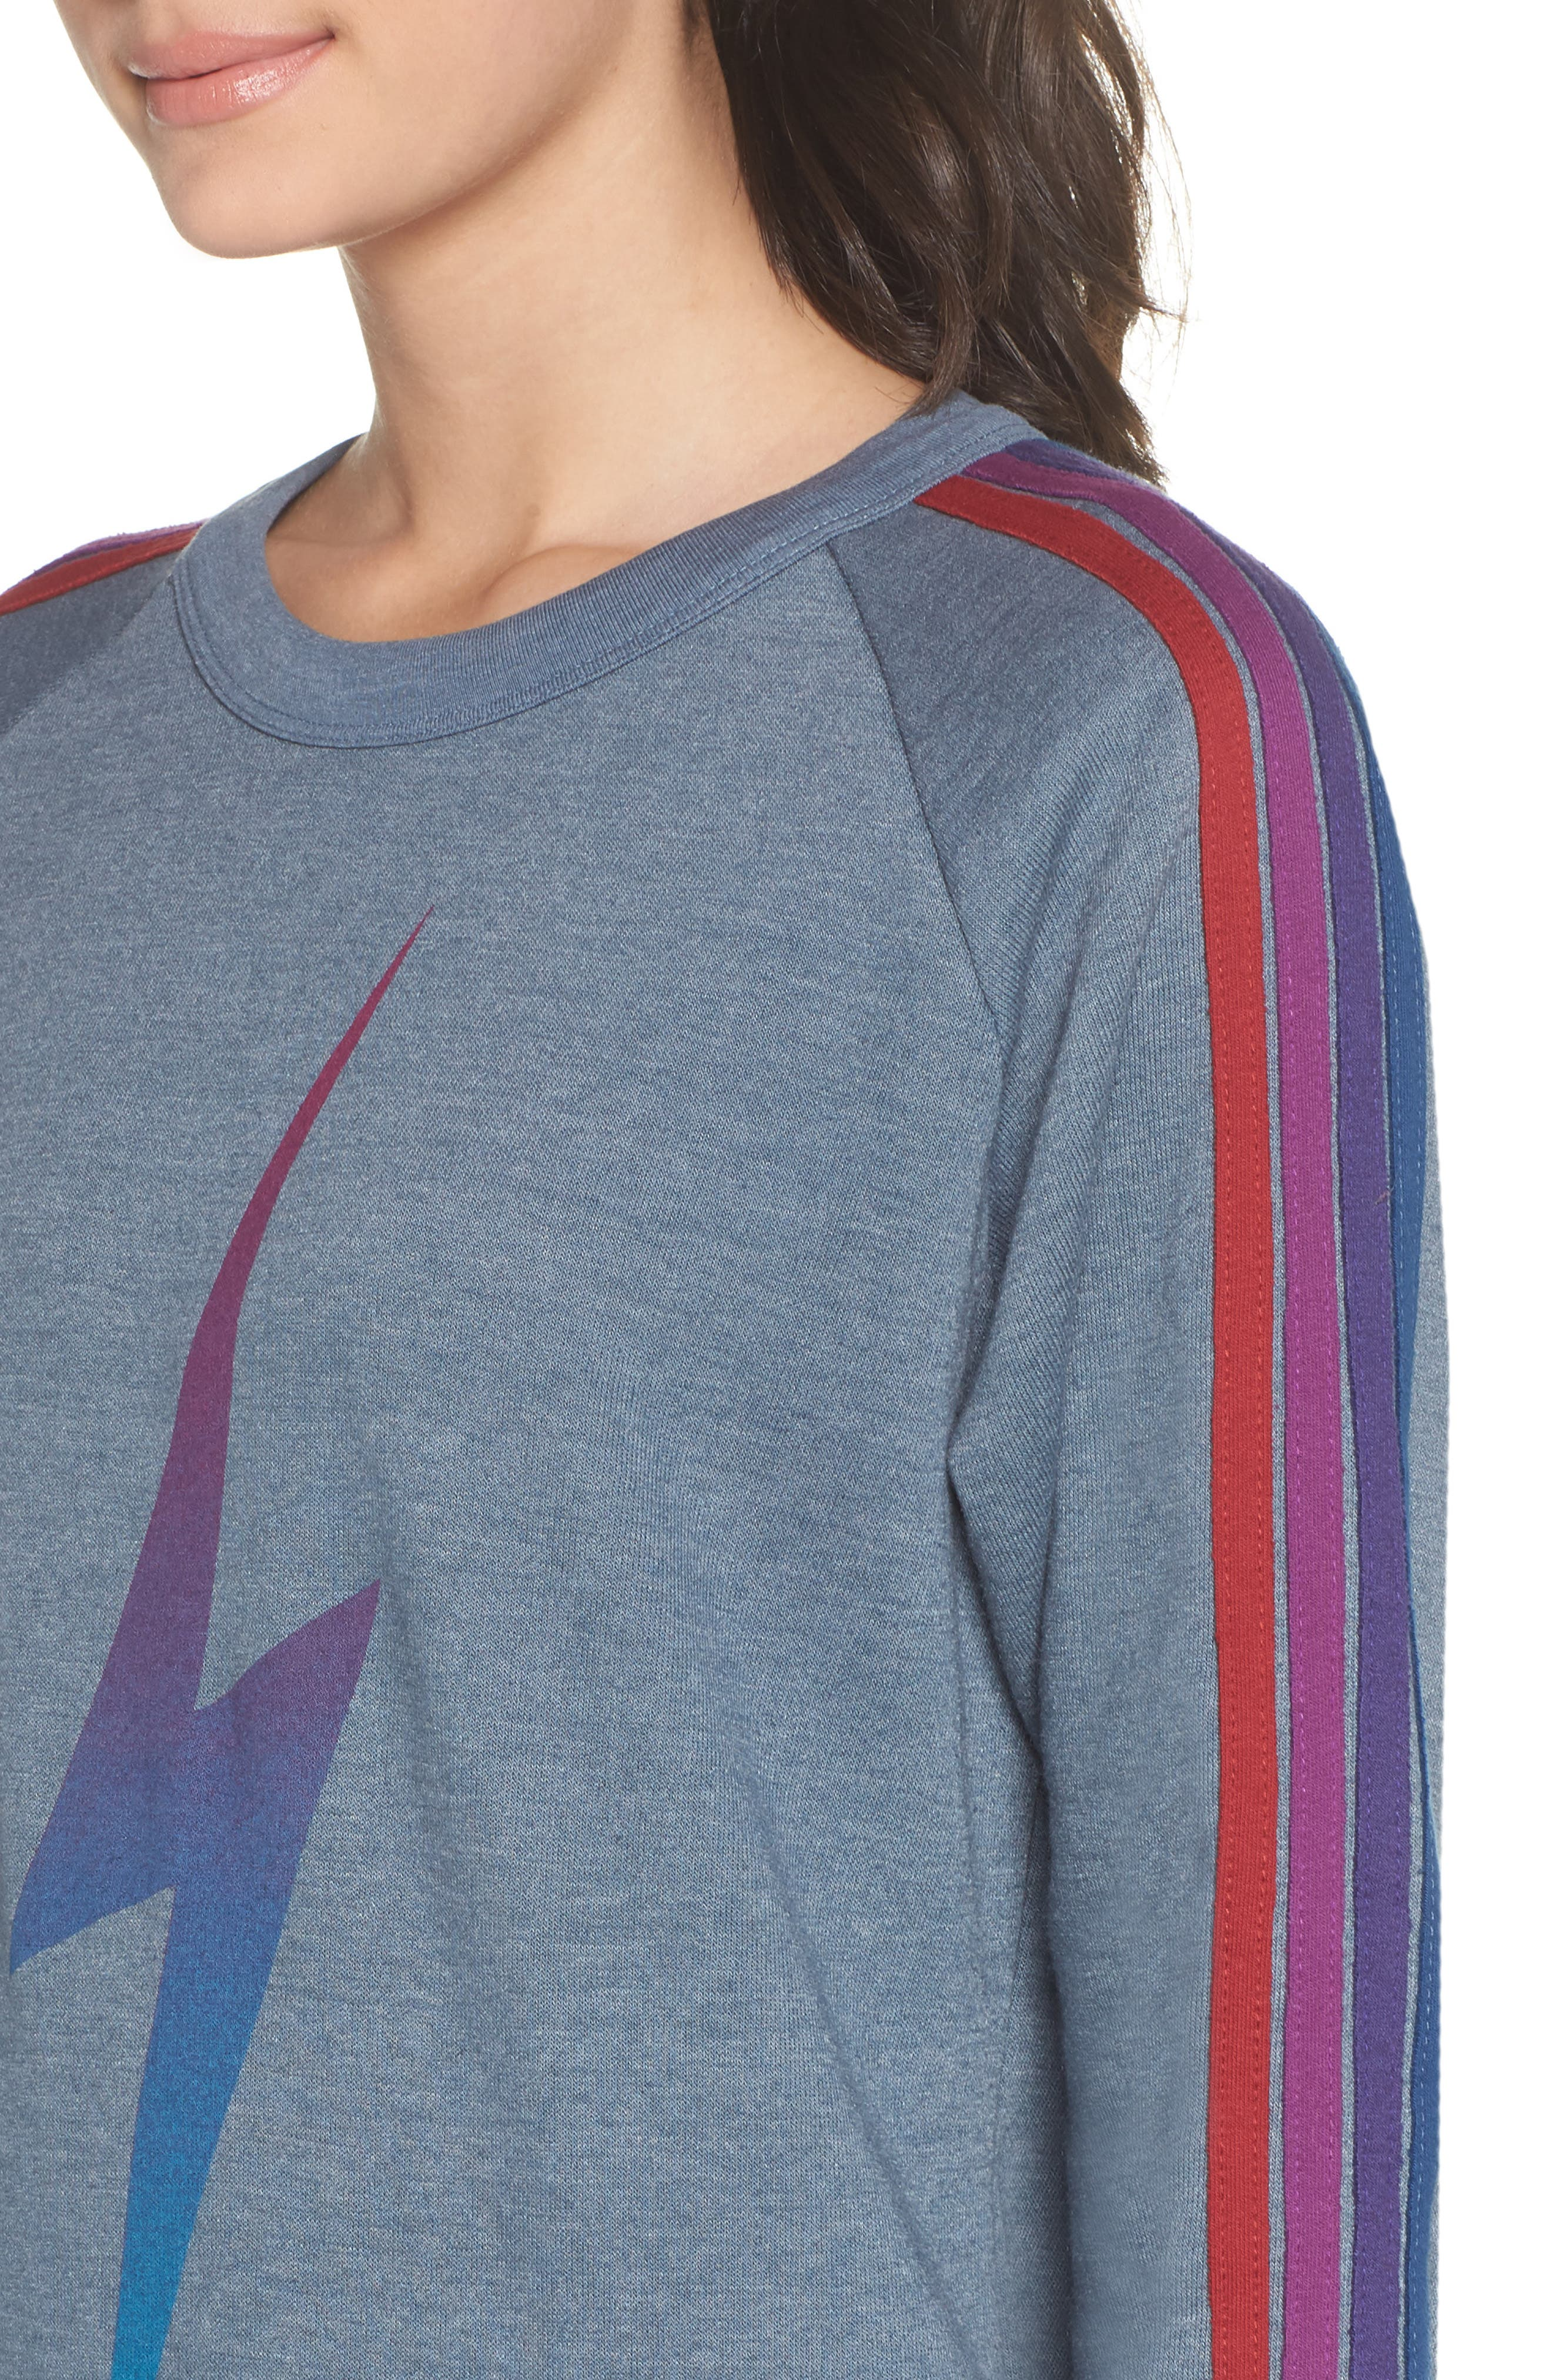 Bolt Fade Sweatshirt,                             Alternate thumbnail 4, color,                             SLATE/ PURPLE